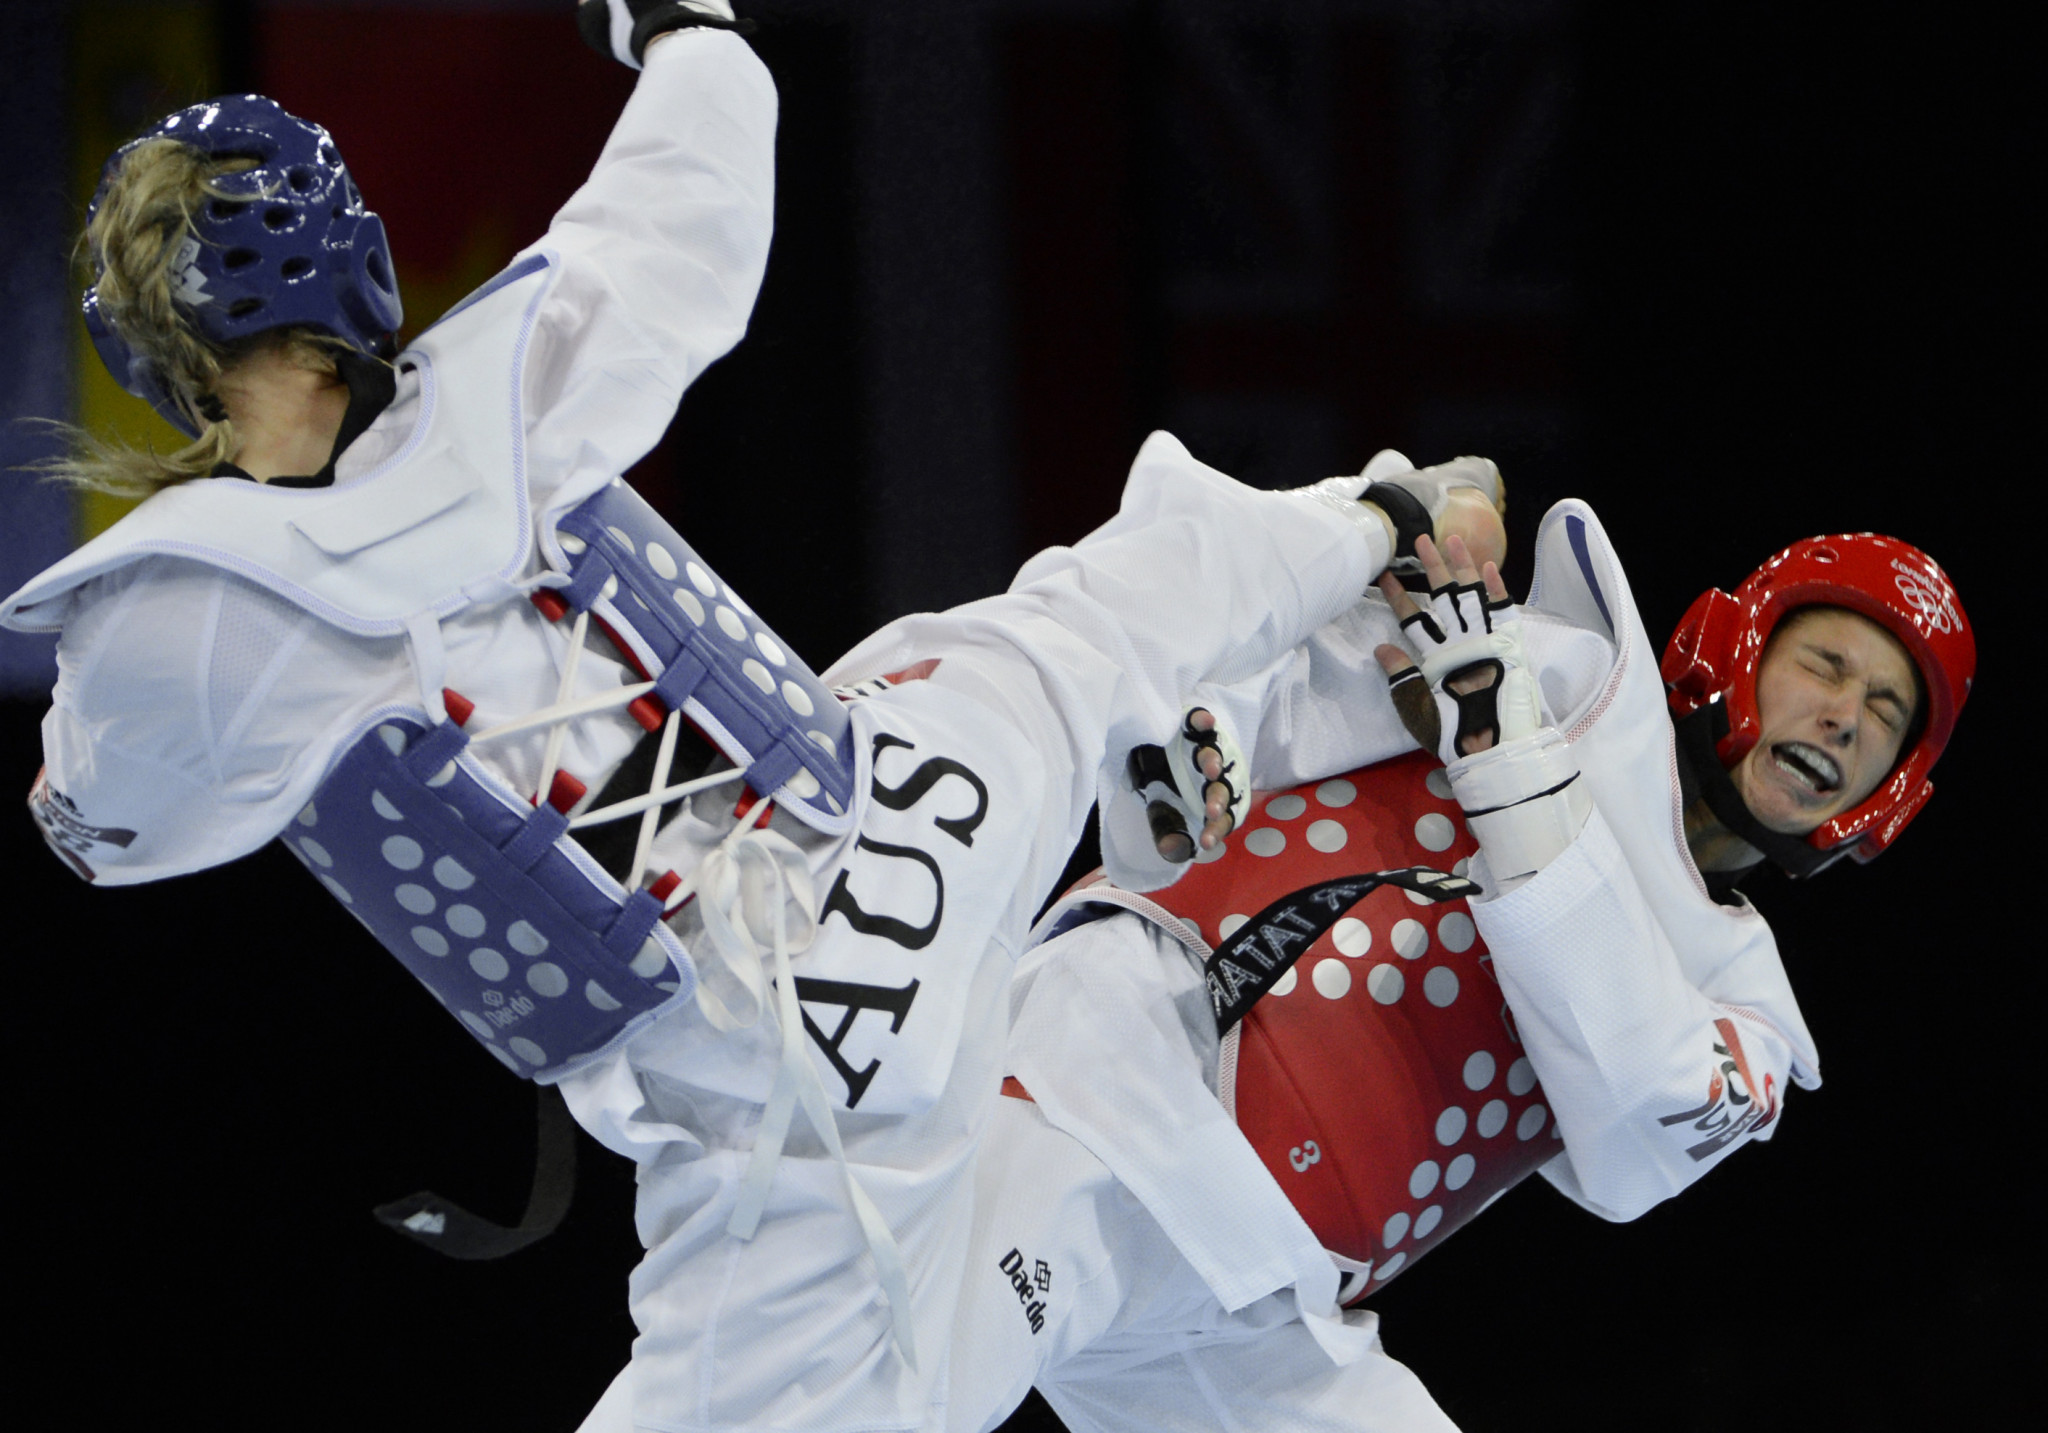 Leanne Cunnold has taken on the important role in Australian taekwondo ©Getty Images